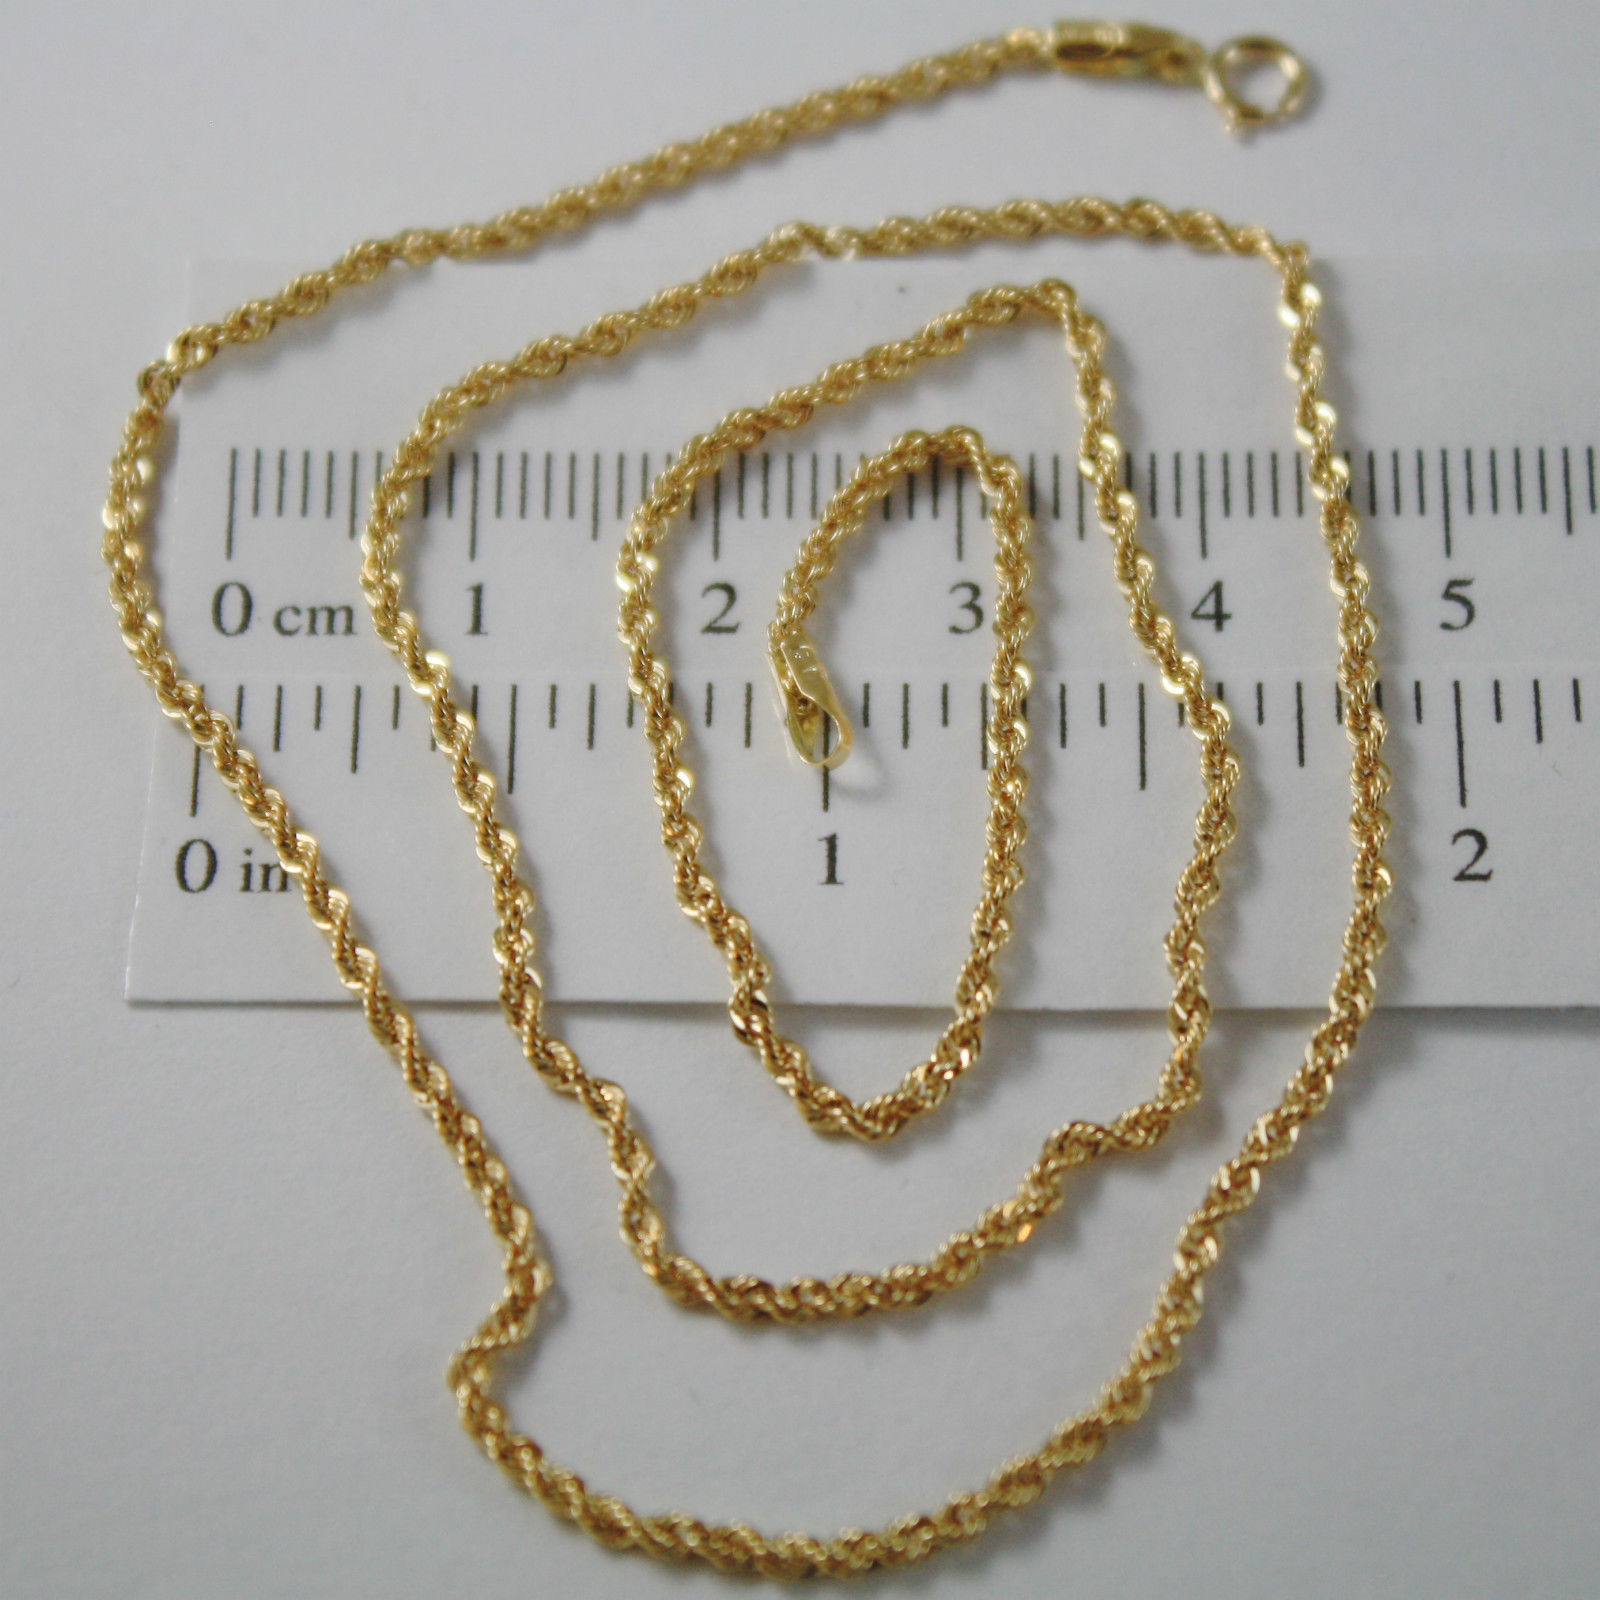 Primary image for 18K YELLOW GOLD CHAIN NECKLACE, BRAID ROPE 19.68 INCH LONG, MADE IN ITALY